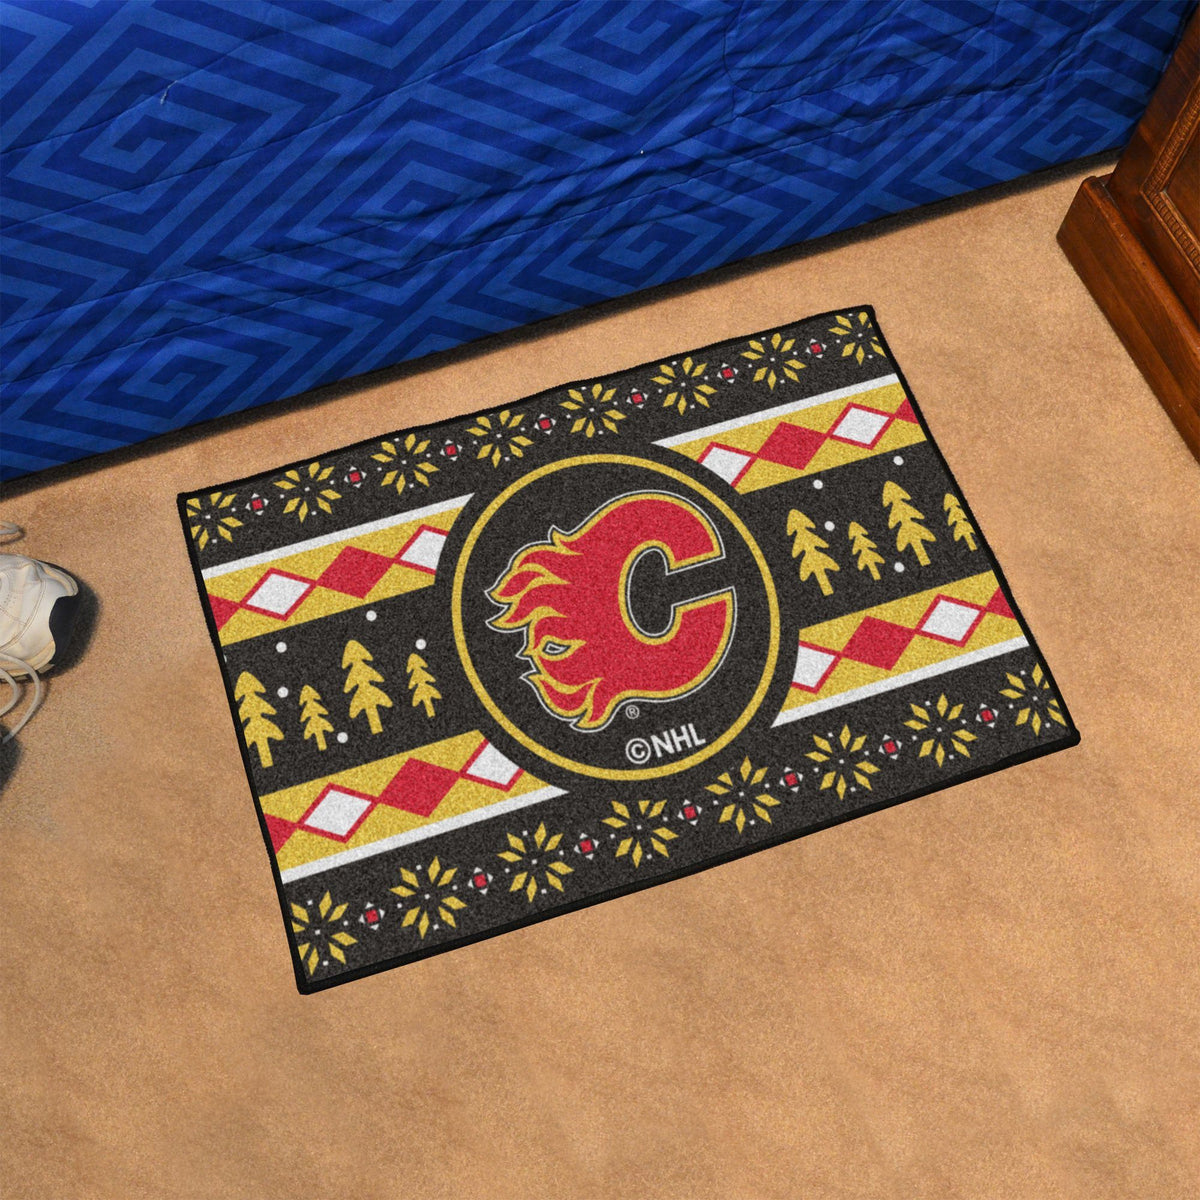 NHL - Holiday Sweater Starter Mat NHL Mats, Rectangular Mats, Holiday Sweater Starter Mat, NHL, Home Fan Mats Calgary Flames